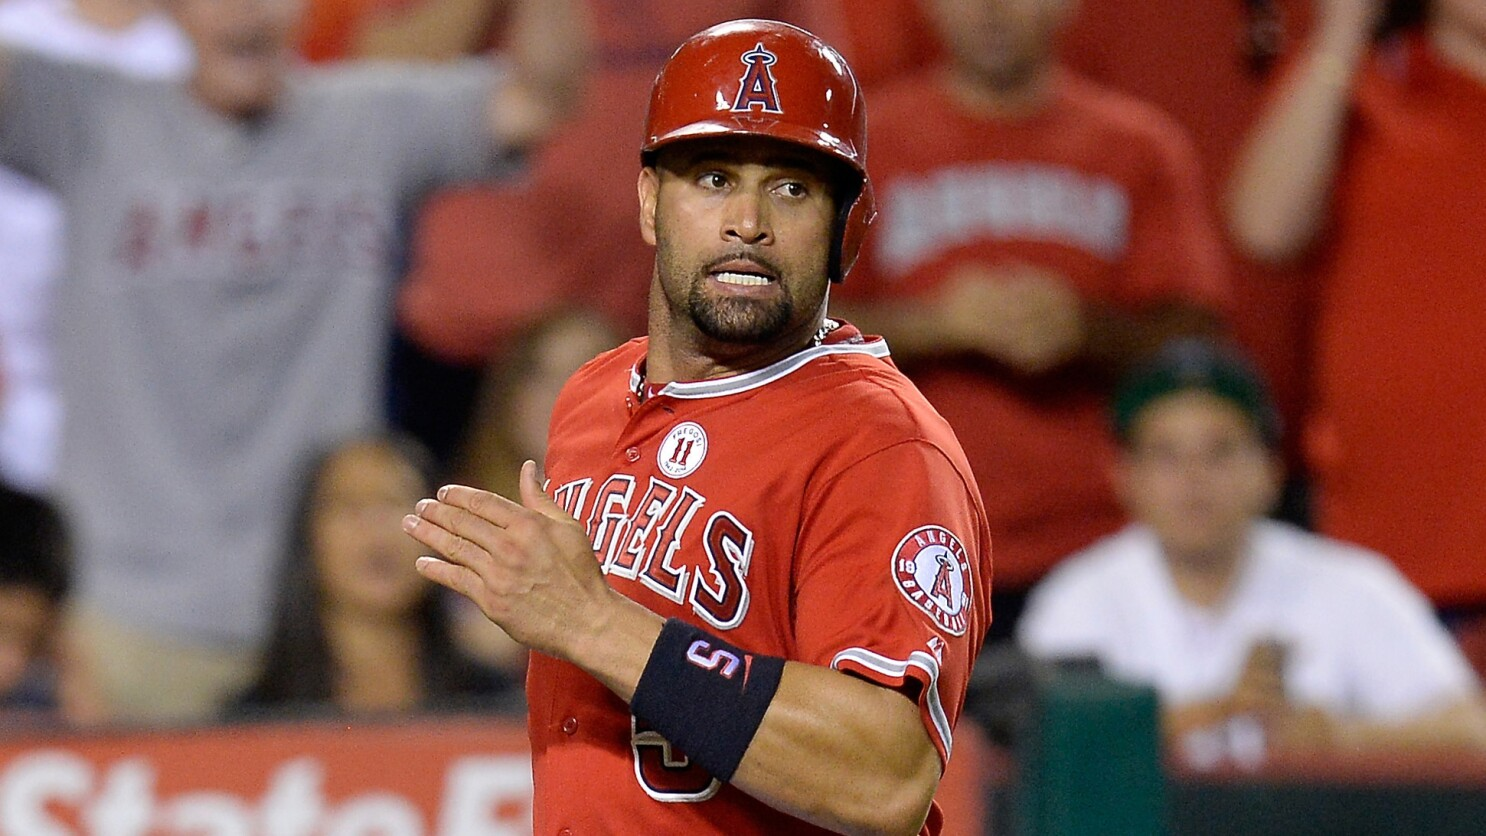 Angels' Albert Pujols exits game with left hamstring tightness but is not expected to miss much time